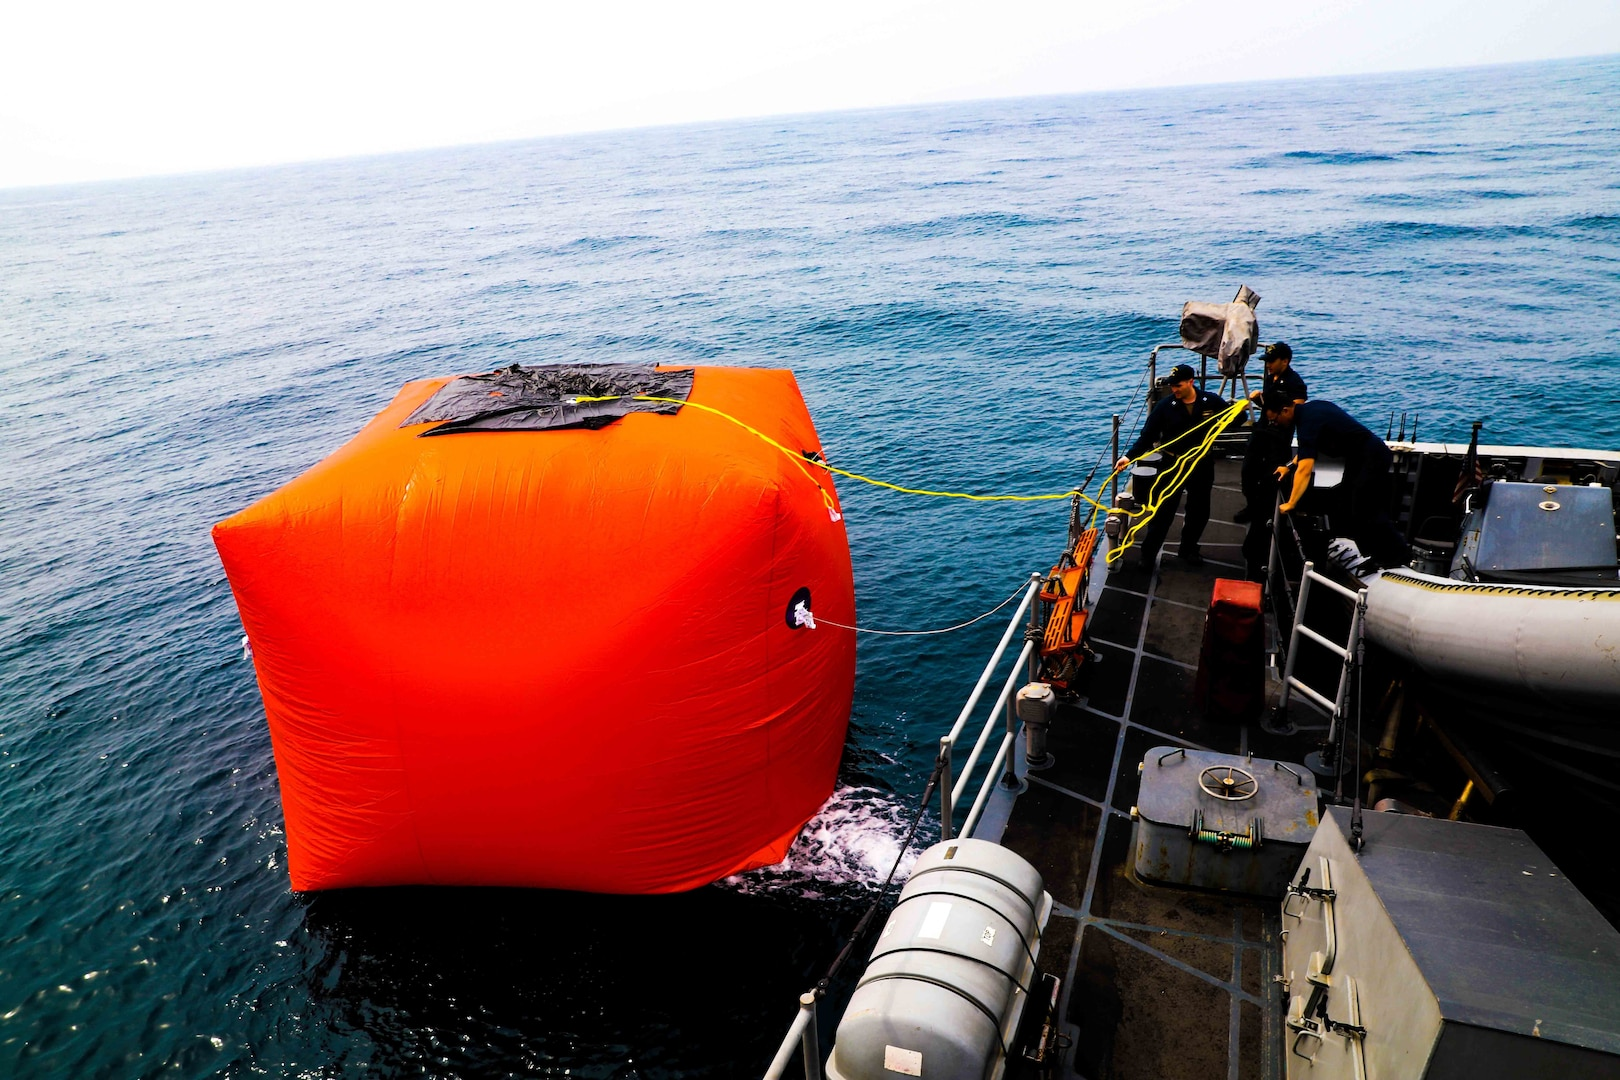 Sailors aboard the coastal patrol ship USS Sirocco (PC 6) place an inflatable target into the water during a live fire exercise with U.S. Army AH-64E Apache attack helicopter assigned to U.S. Army Central Command's (USARCENT) Task Force Saber. Sirocco is deployed to the U.S. 5th Fleet area of operations in support of naval operations to ensure maritime stability and security in the central region, connecting the Mediterranean and the Pacific through the Western Indian Ocean and three strategic choke points.